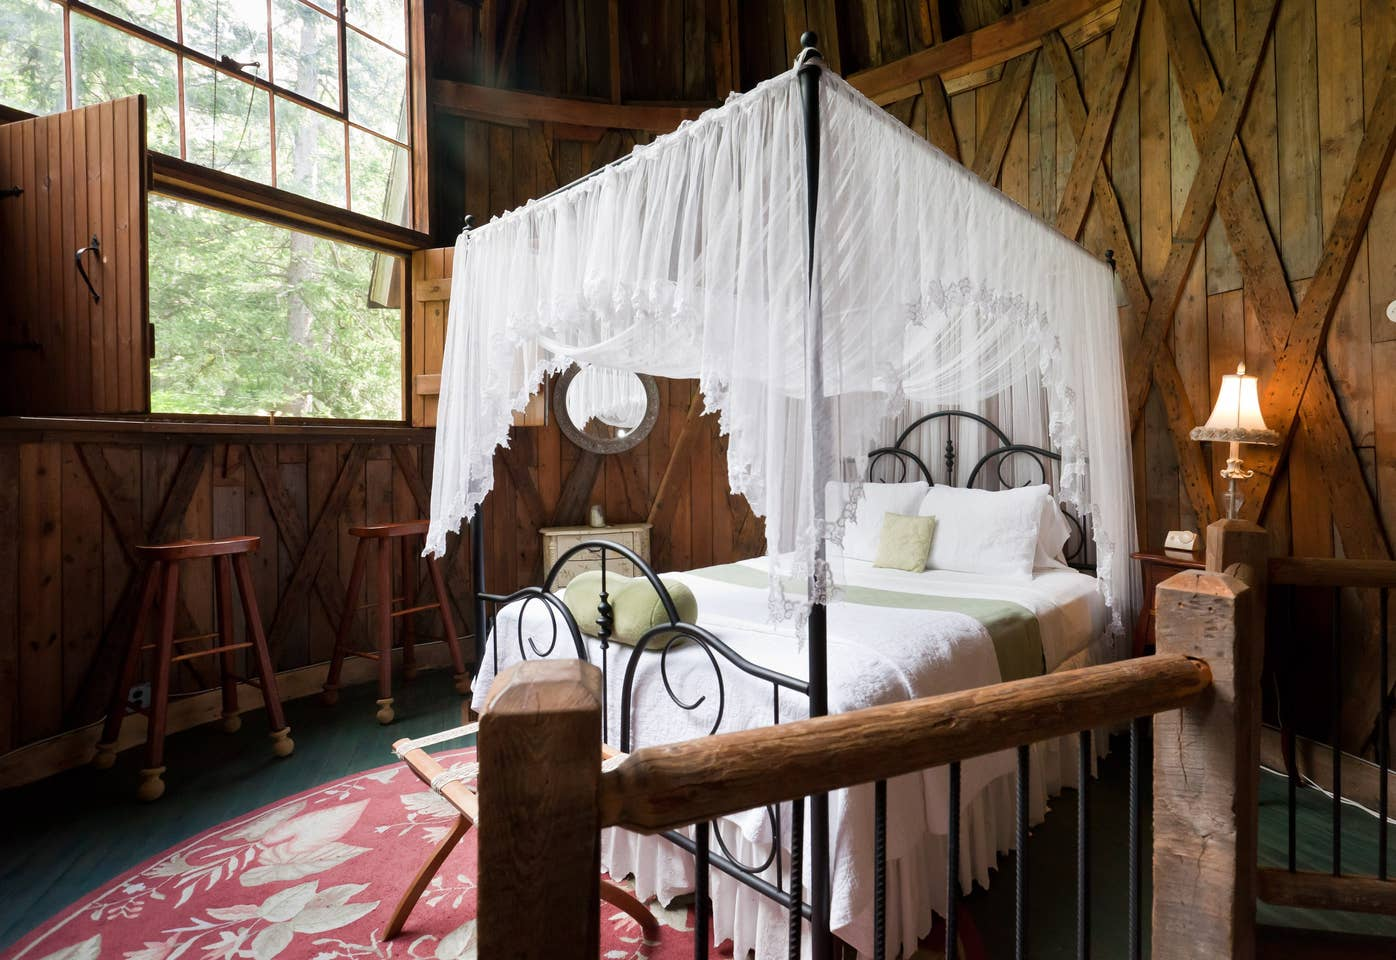 Most Unique USA Airbnbs round silo studio cottage Massachusetts bed lace canopy